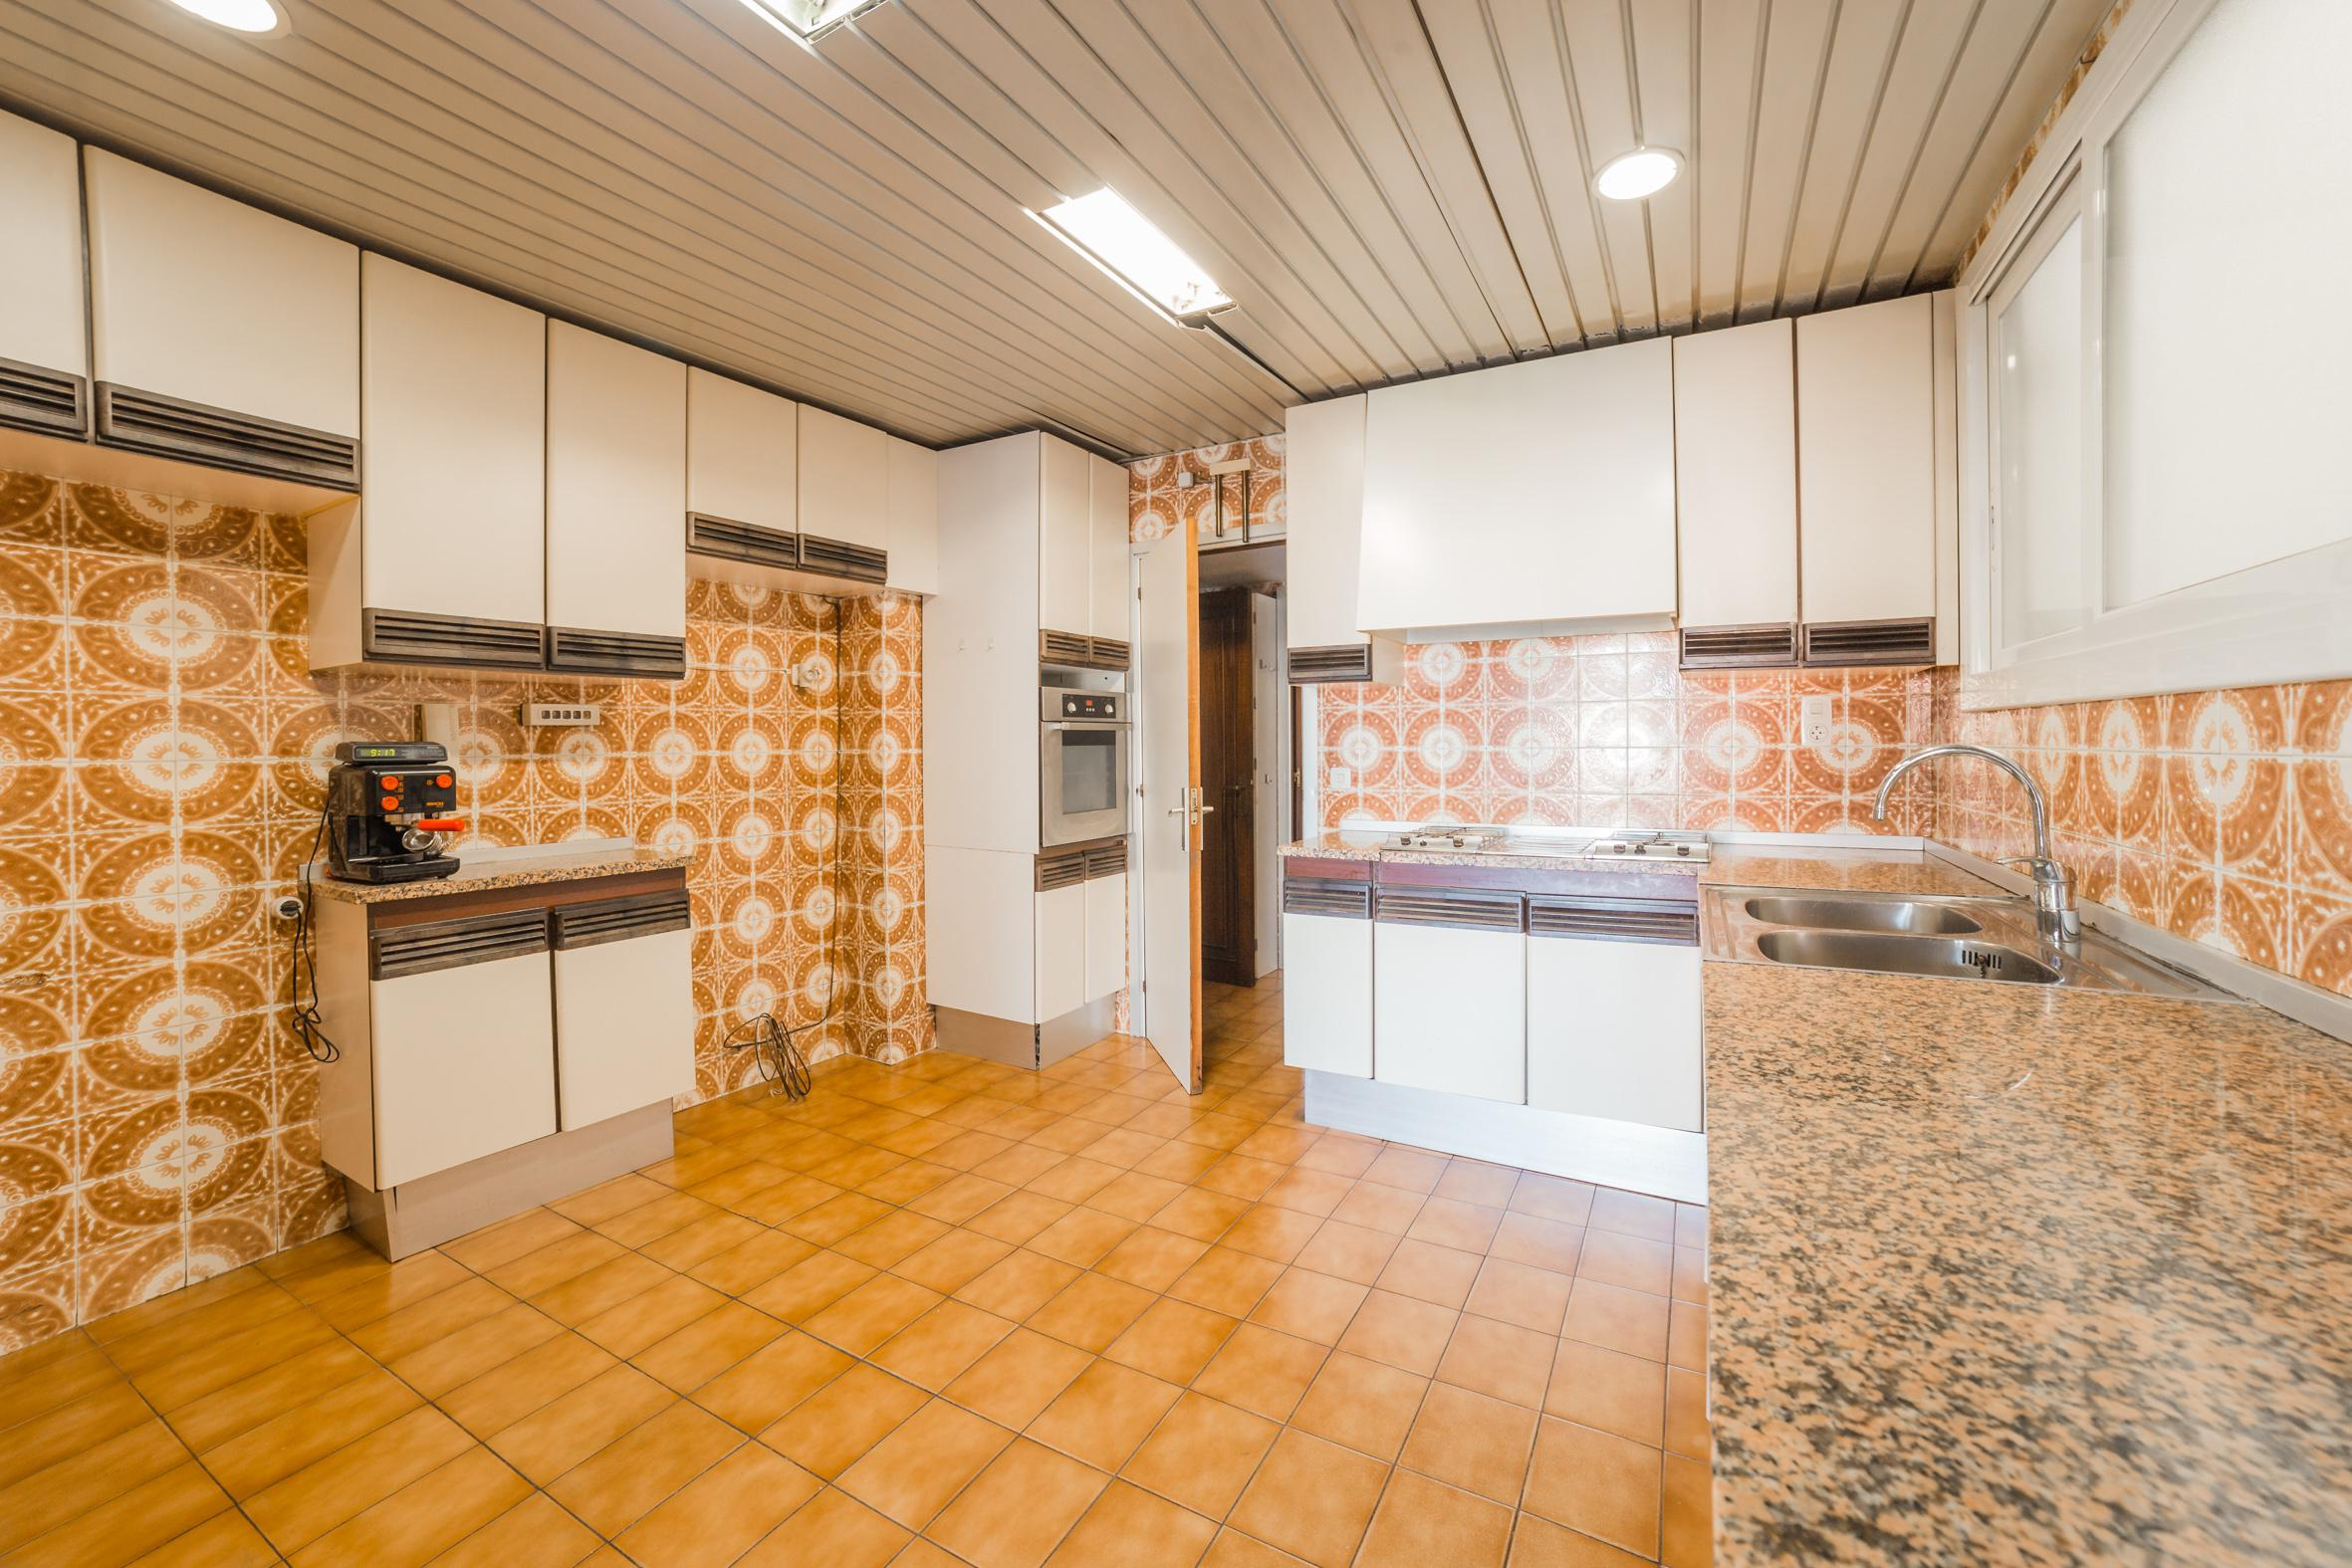 248988 Flat for sale in Les Corts, Les Corts 13